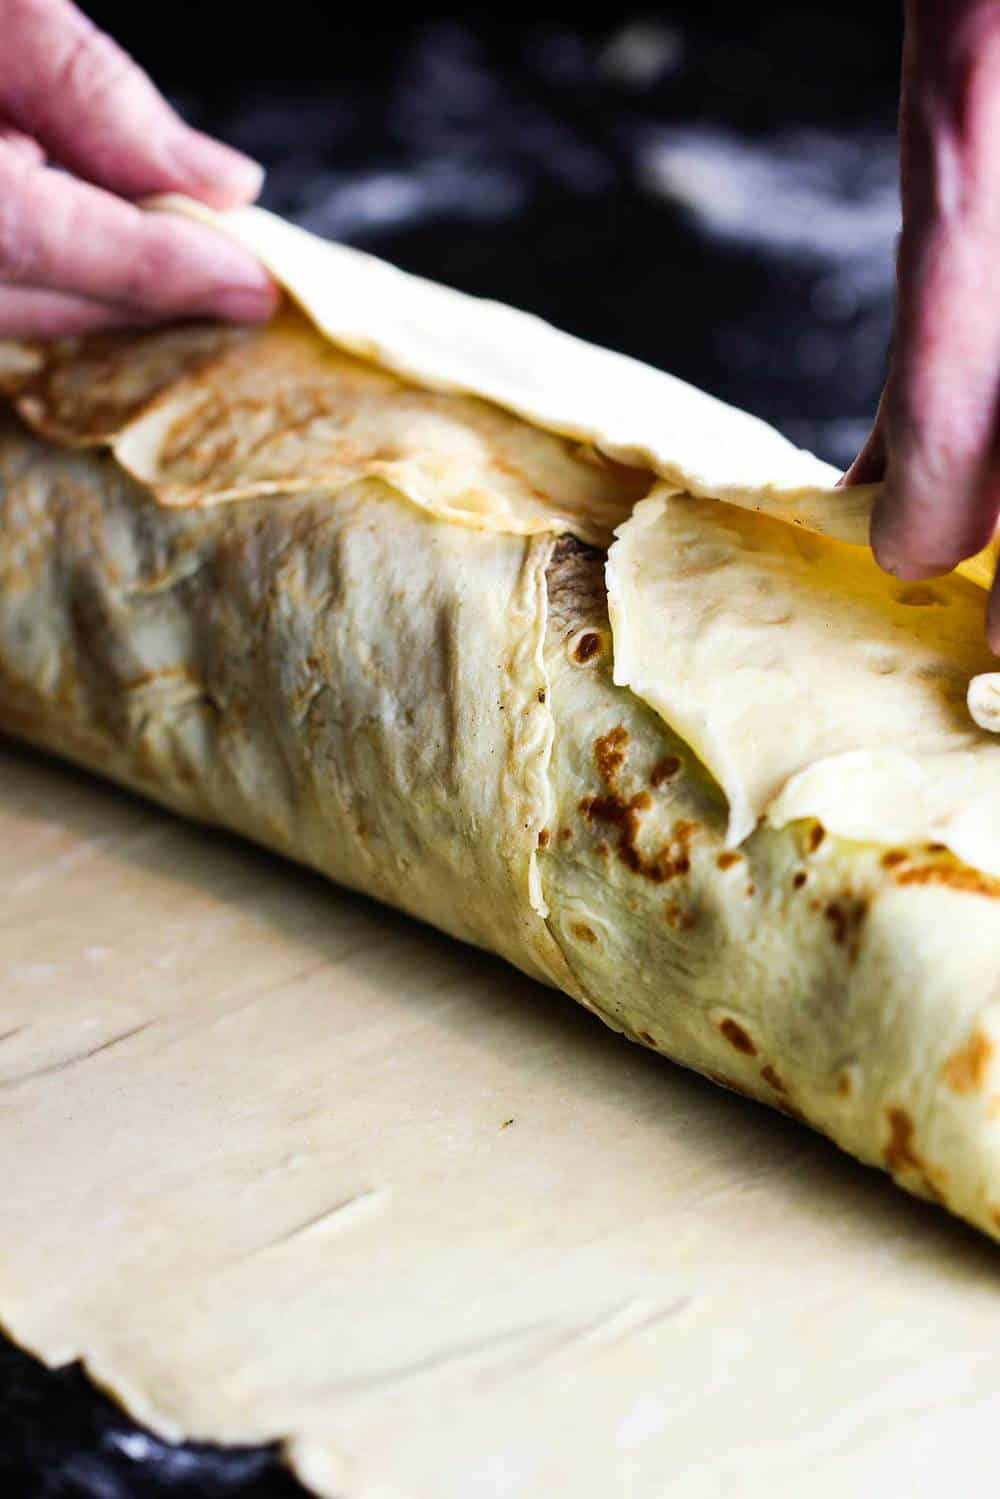 Pastry being wrapped around the classic beef Wellington